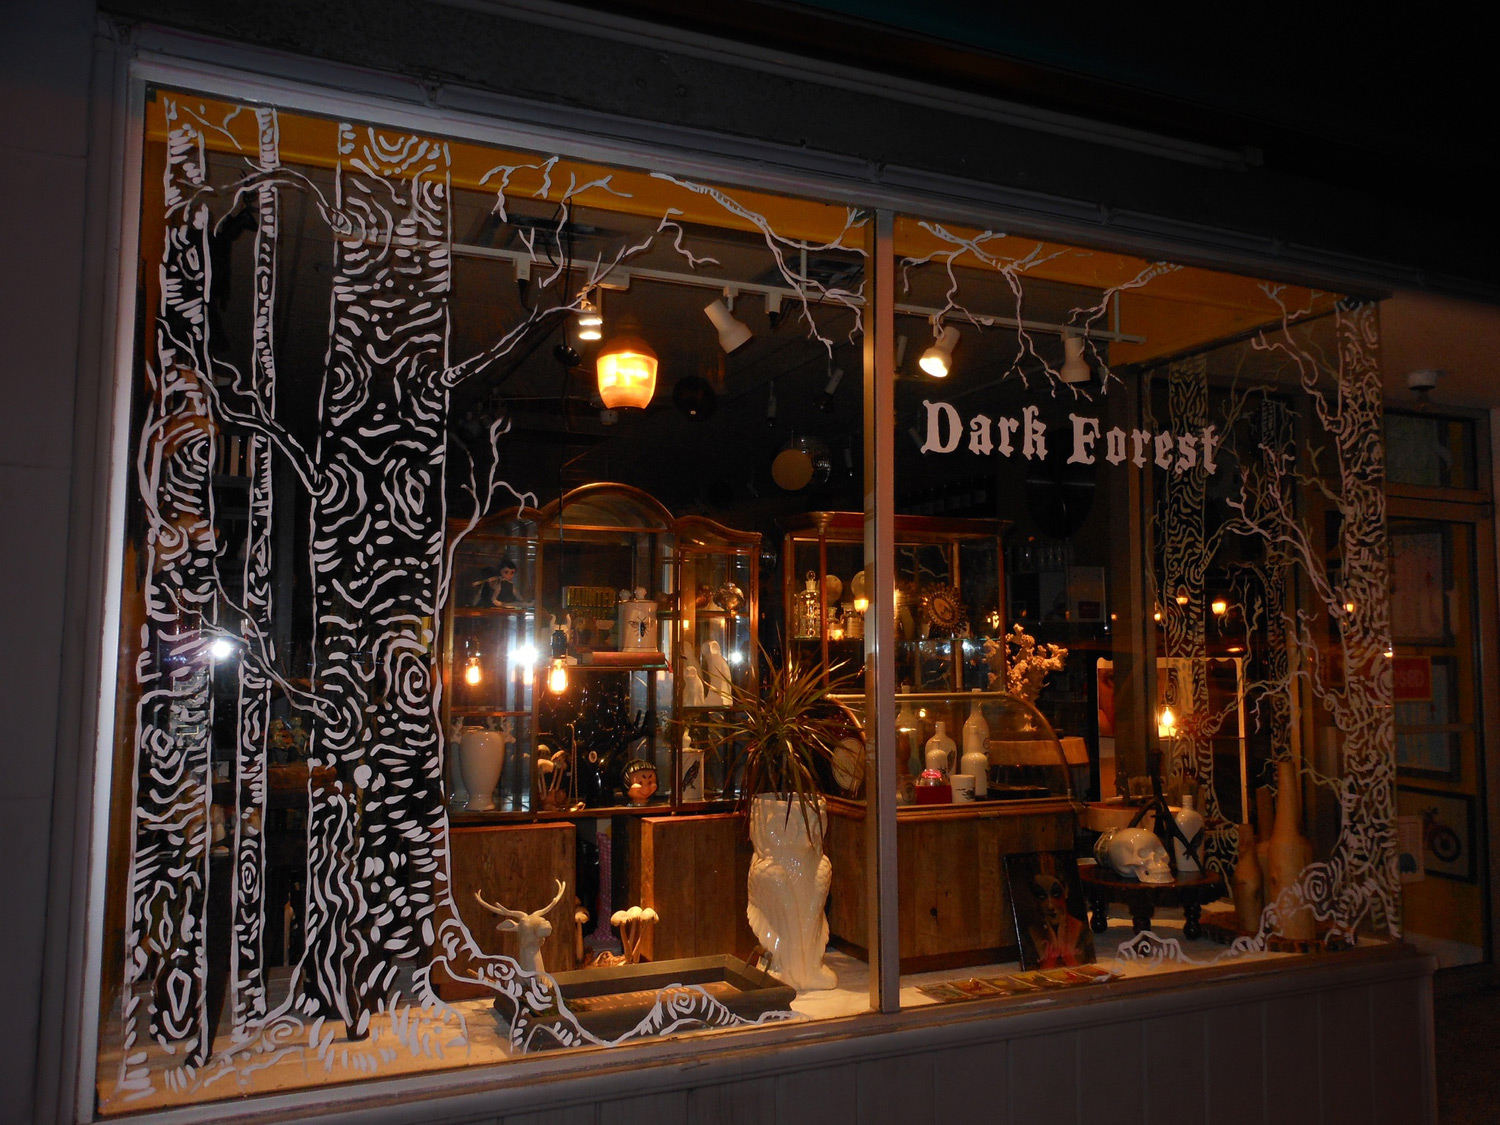 Scout Royal Oak, decorated for Halloween through some painting applied on the window display that looks like a dark forest.